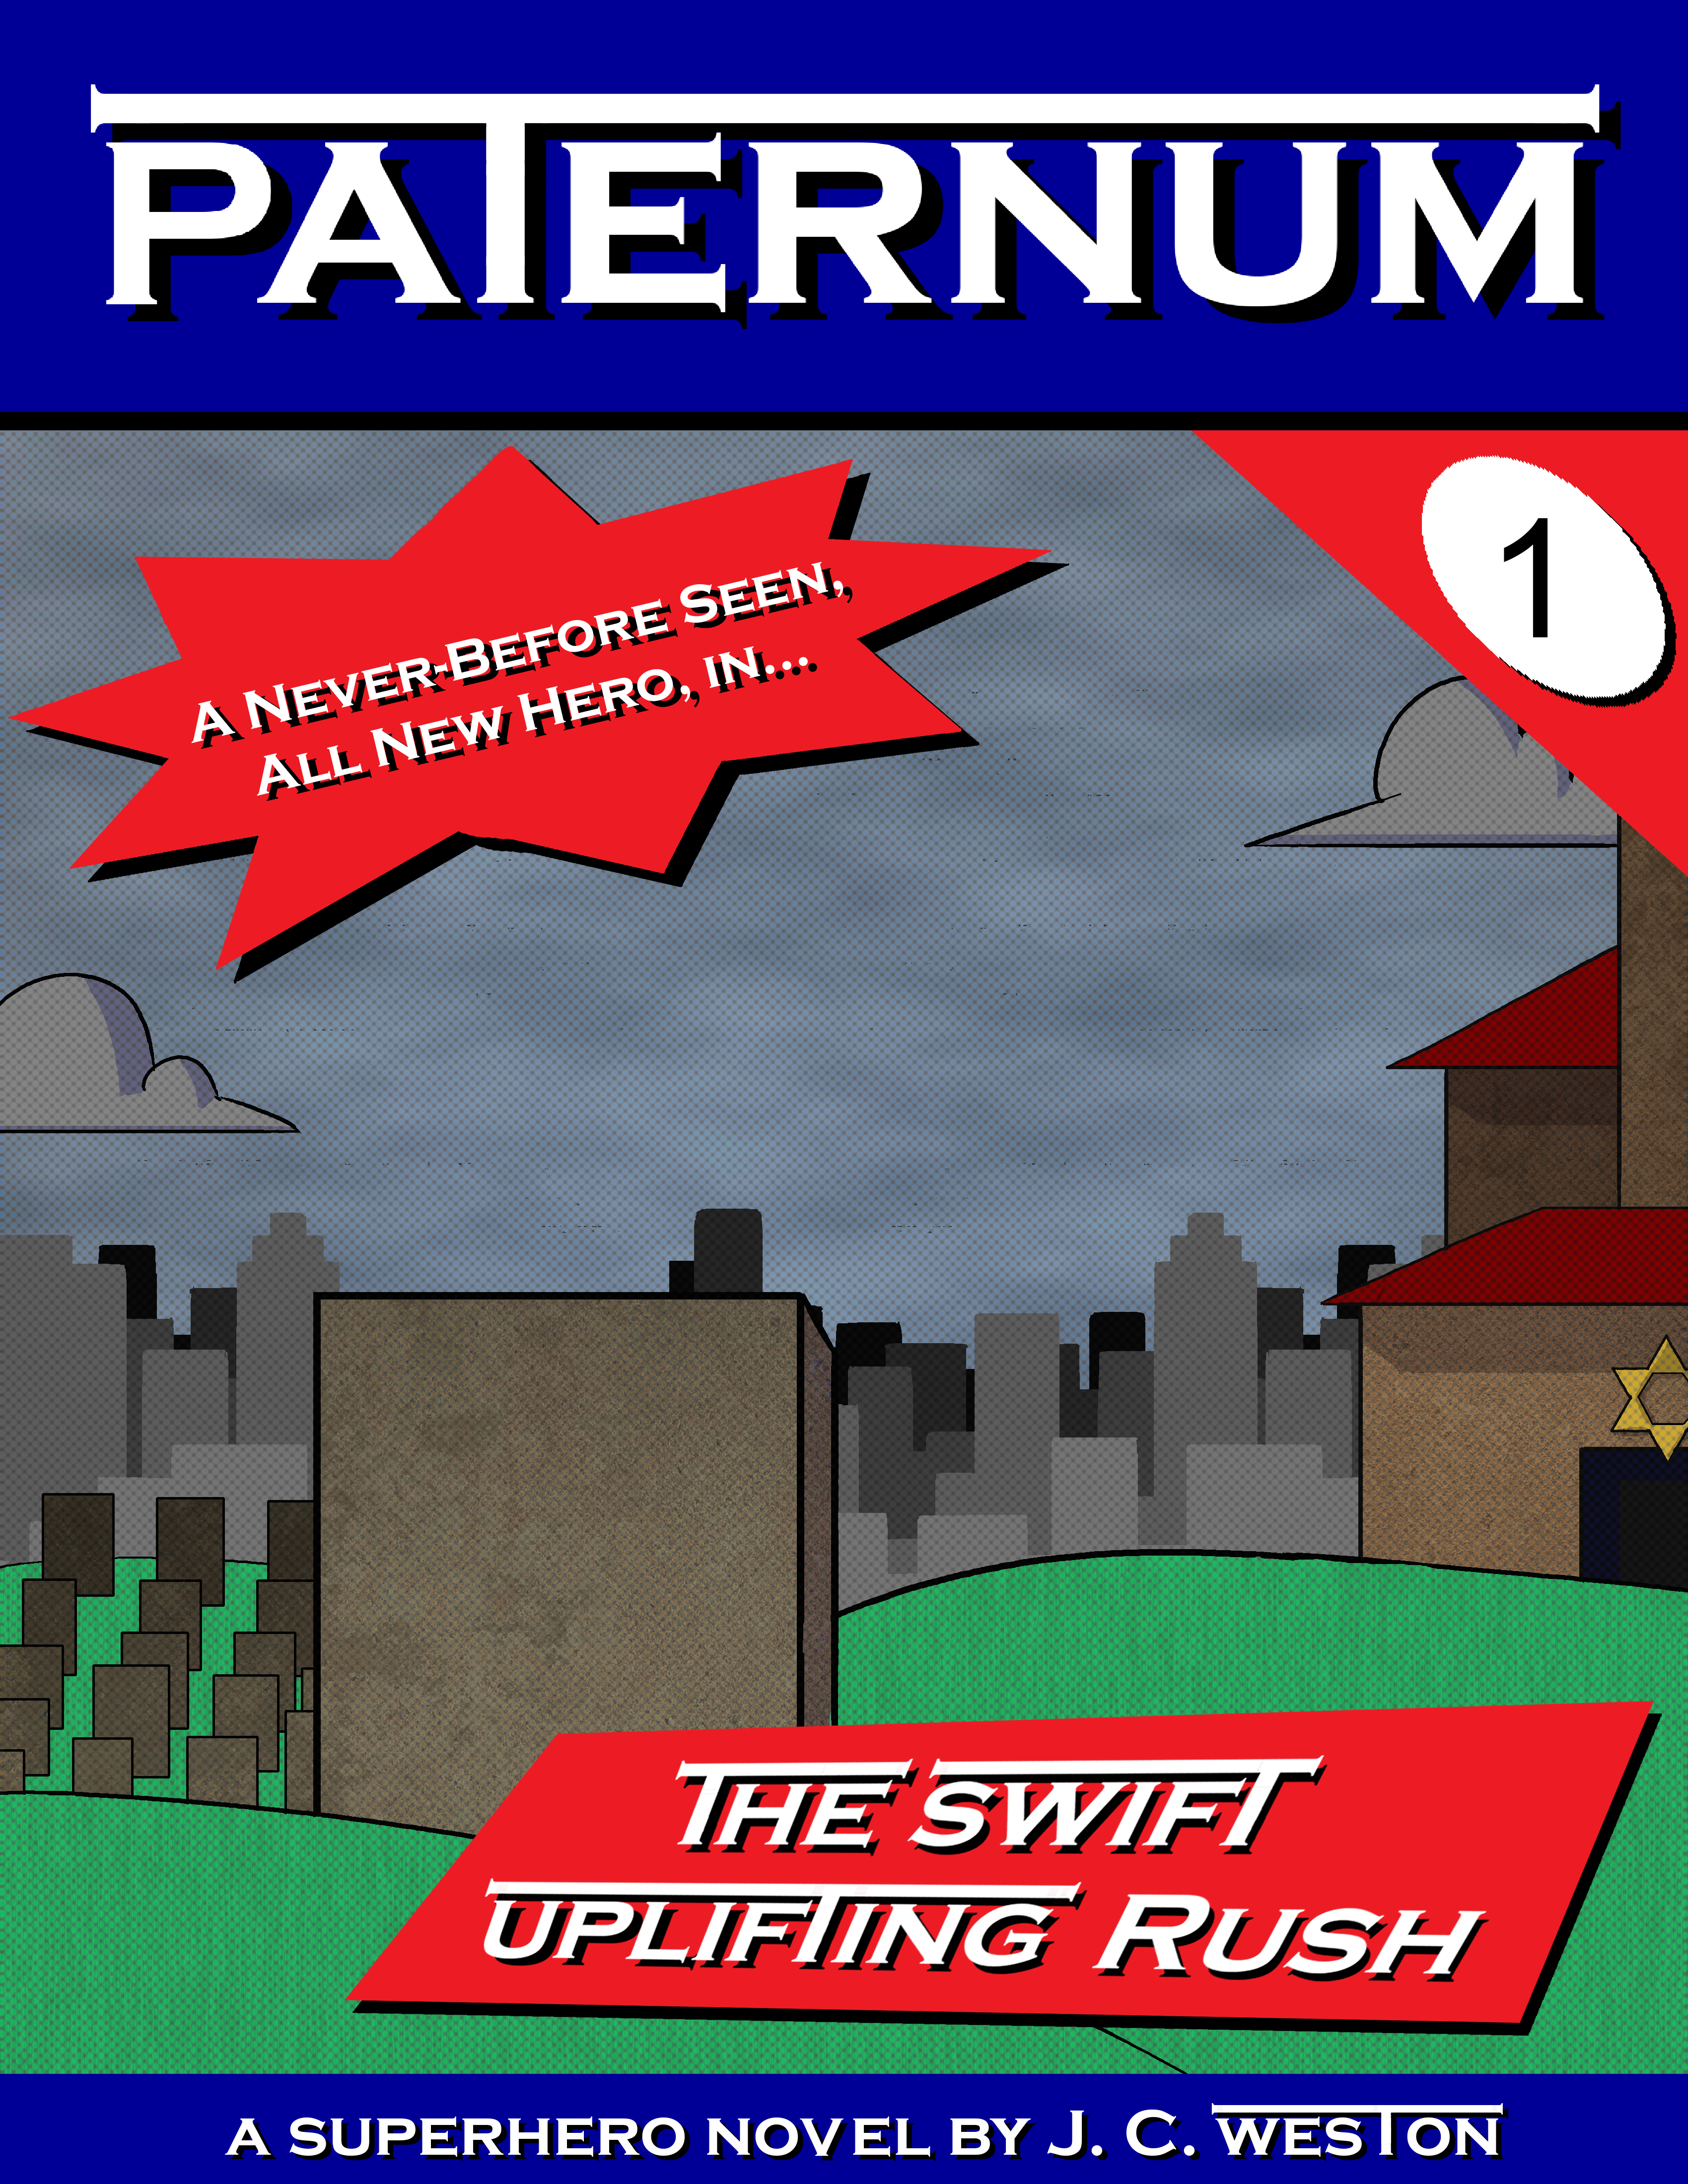 """The cover of the first book of Paternum, titled """"the Swift Uplifting Rush"""". It depicts one particular grave in a Jewish cemetery, on an overcast day, with a city skyline in the background."""